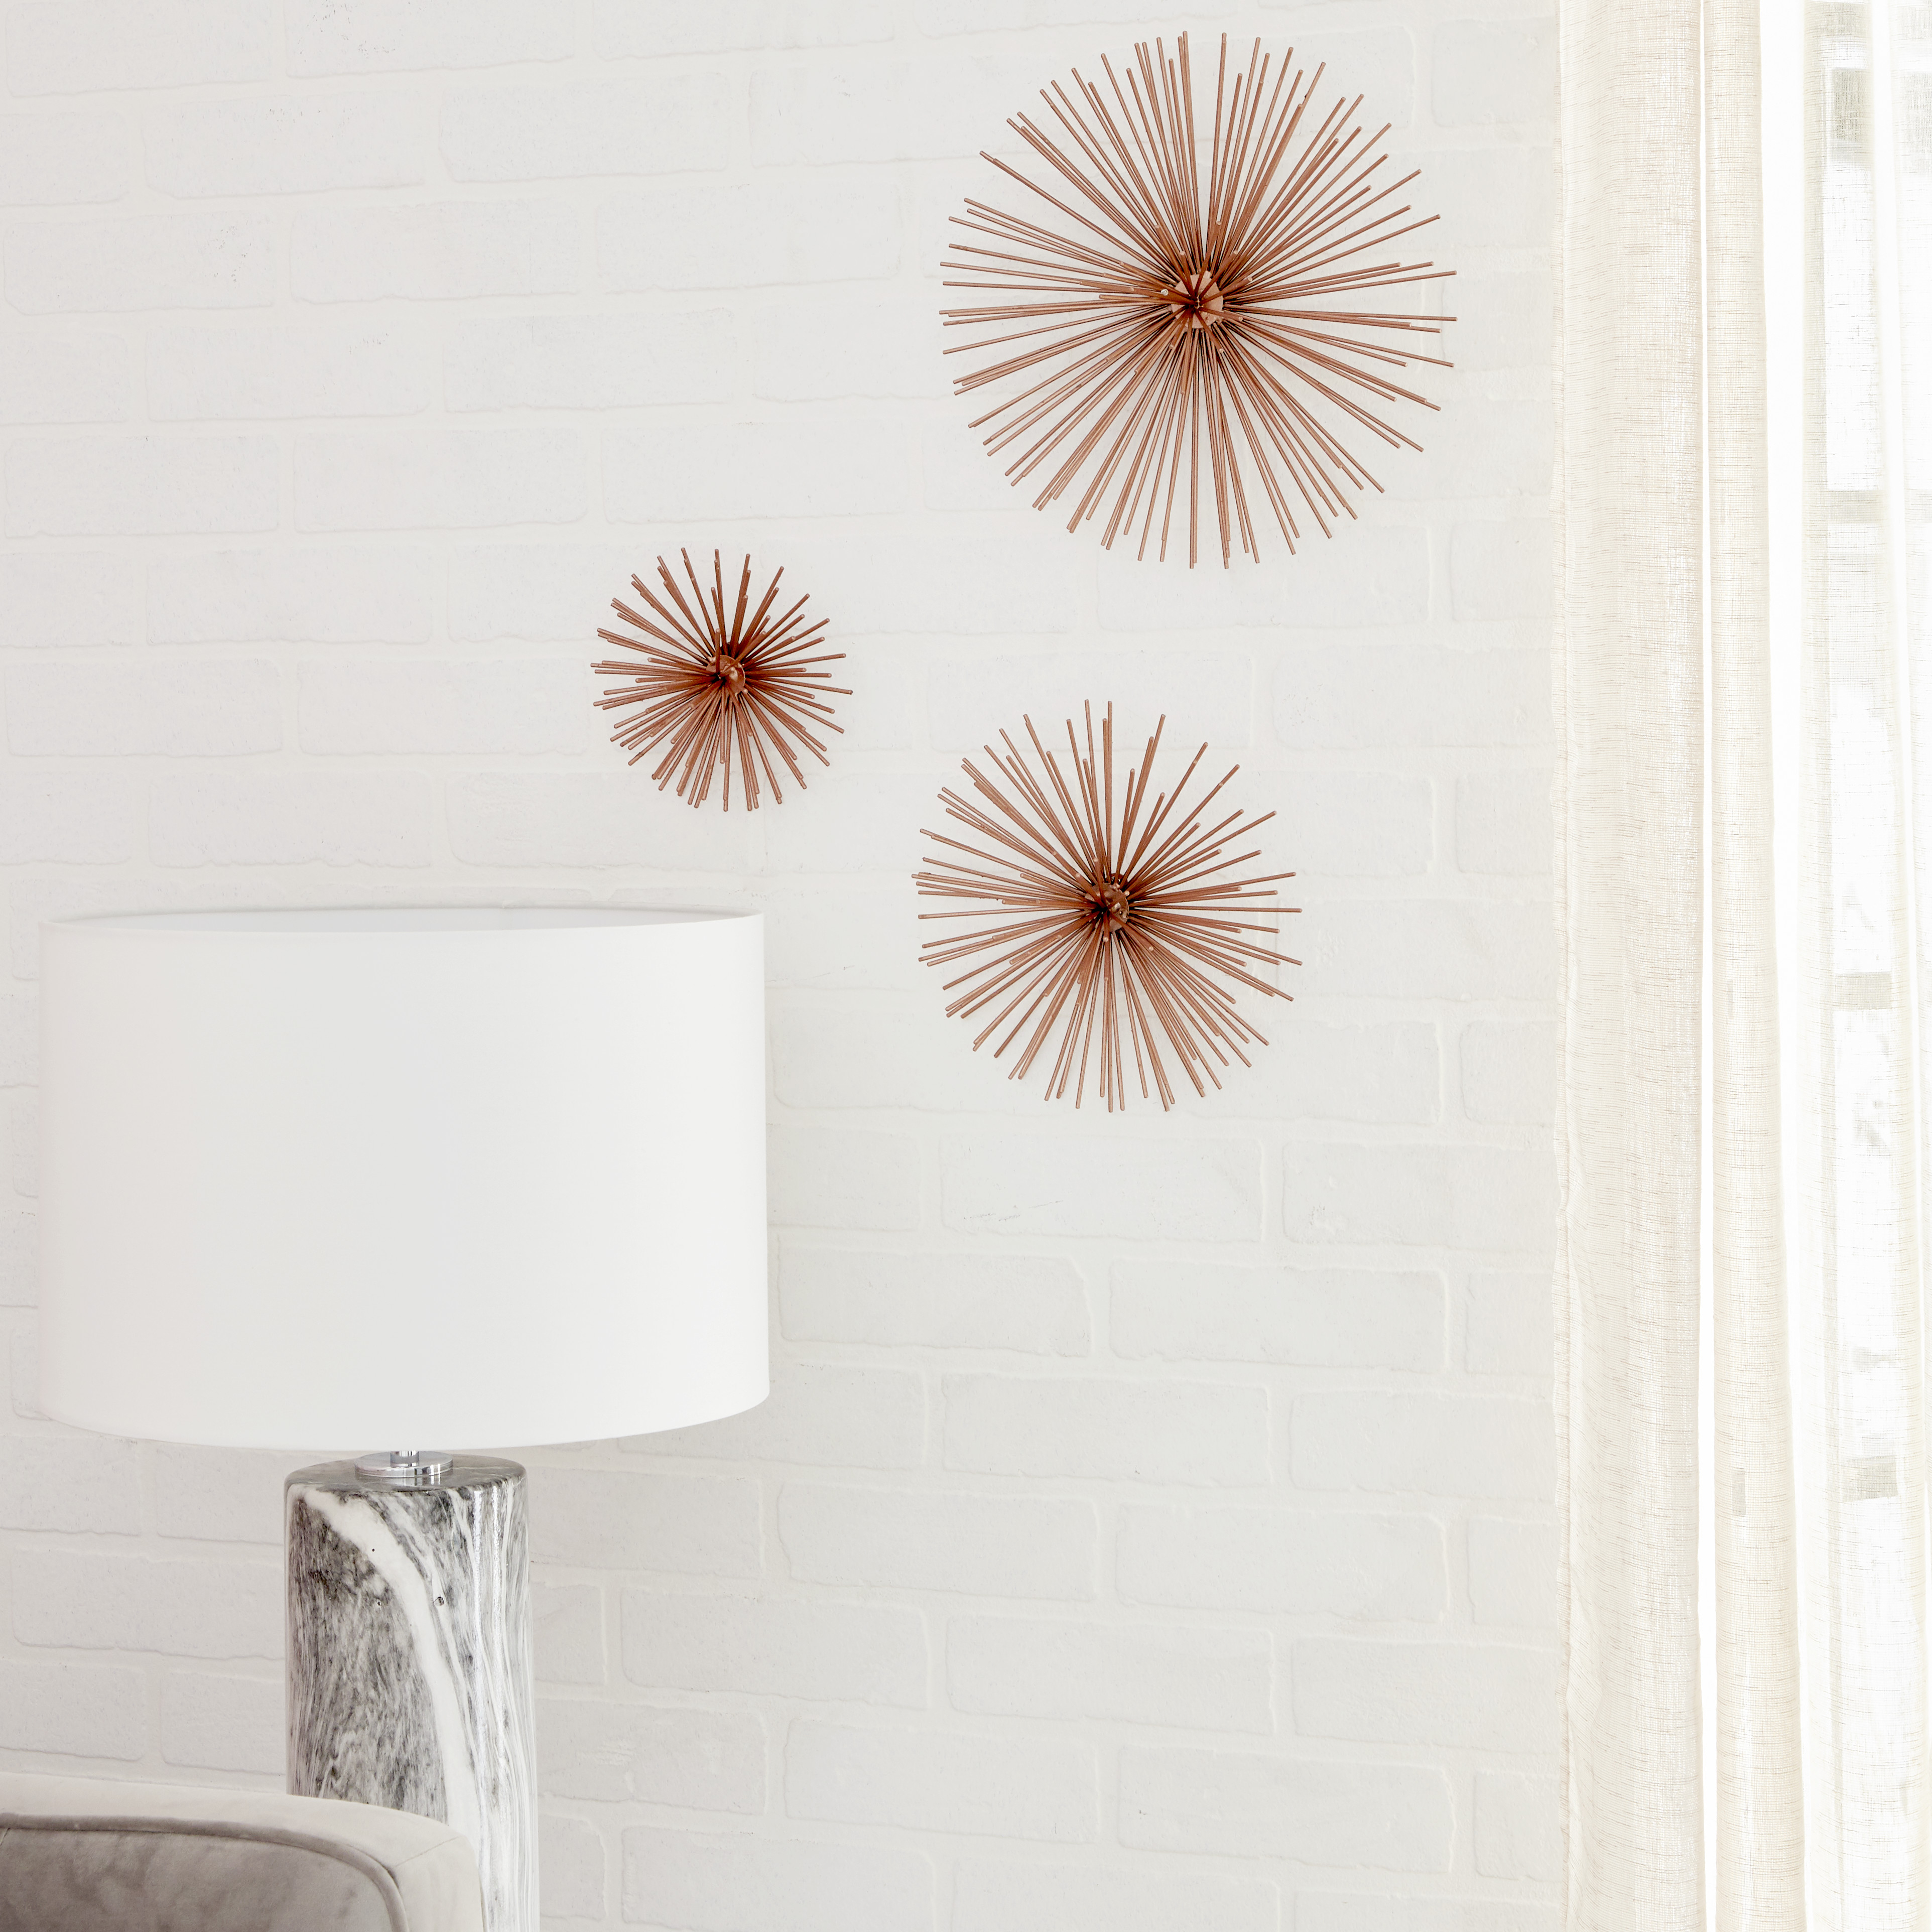 Cosmoliving Contemporary Style 3D Round Copper Metal Starburst Wall Regarding Newest Metal Wall Decor By Cosmoliving (Gallery 11 of 20)